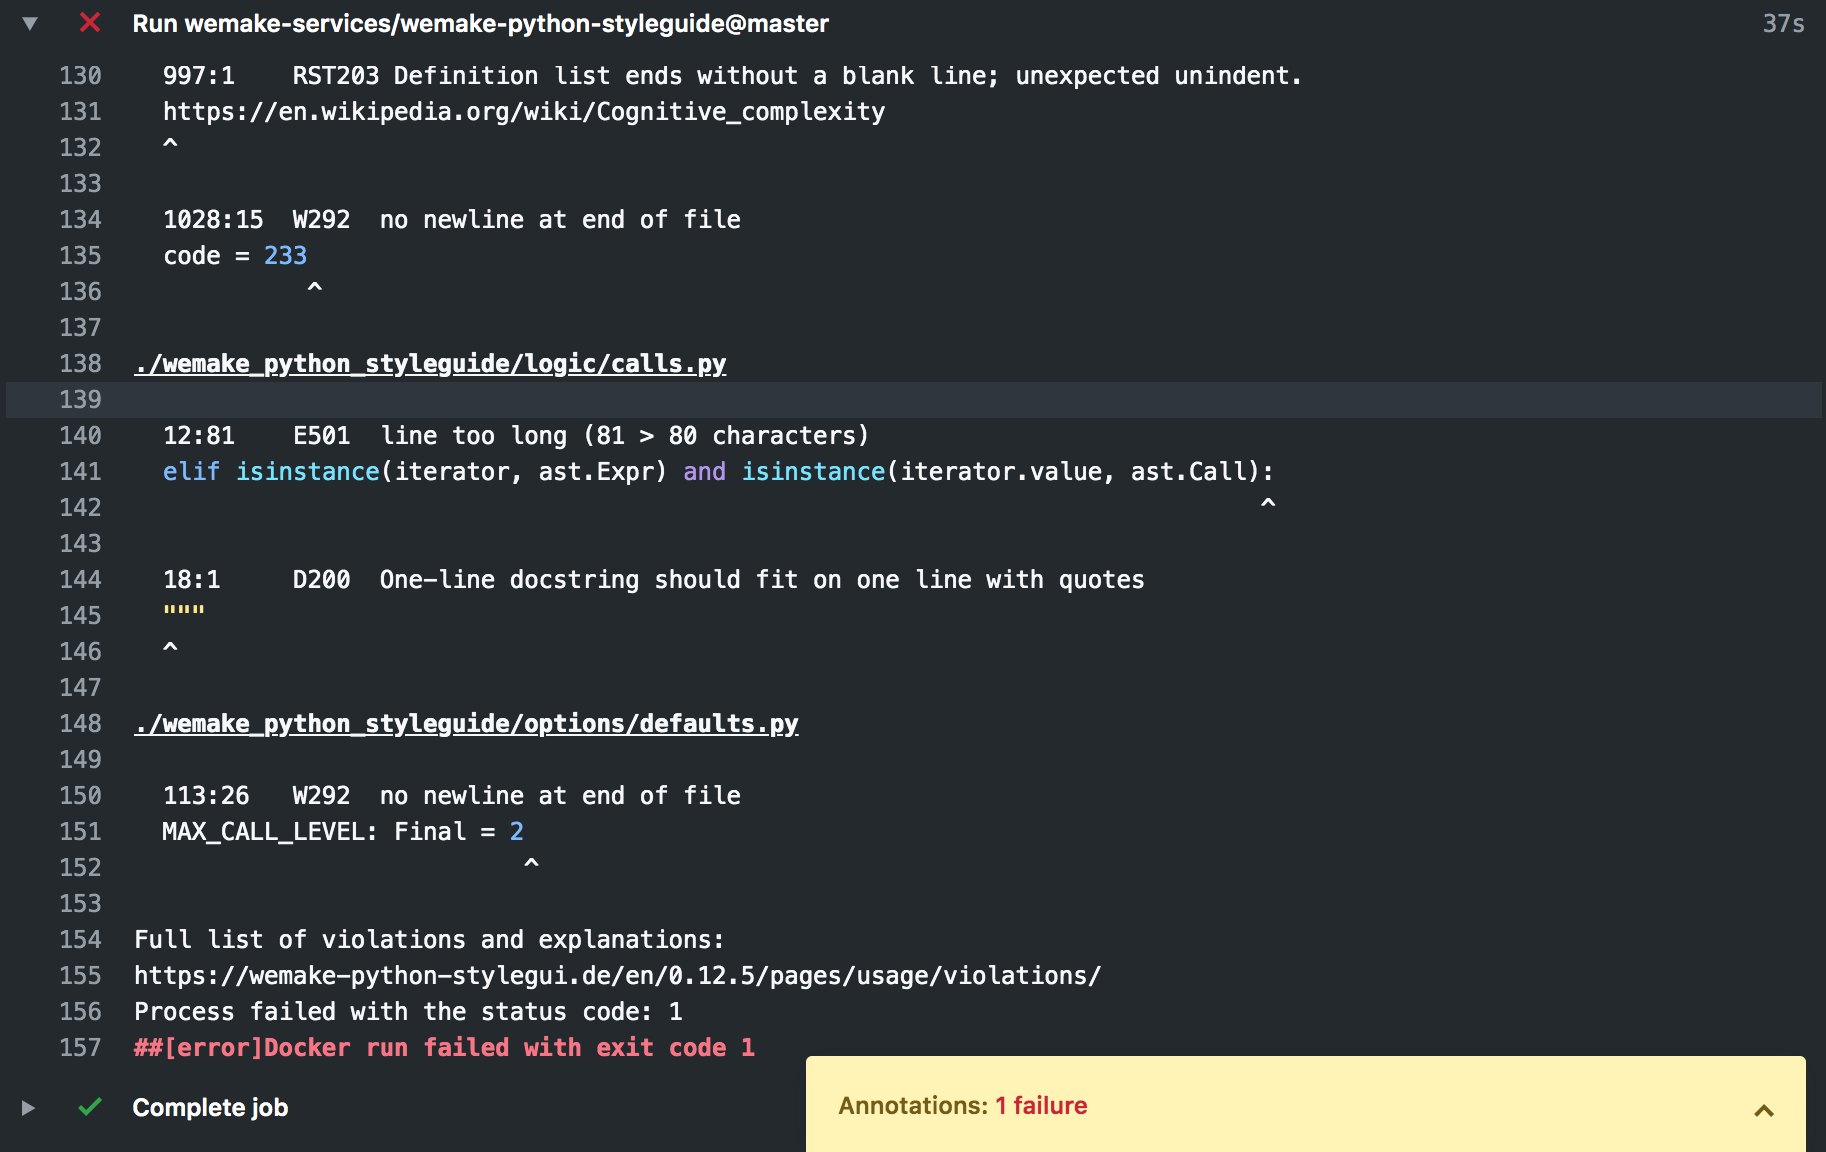 https://raw.githubusercontent.com/wemake-services/wemake-python-styleguide/master/docs/_static/terminal.png